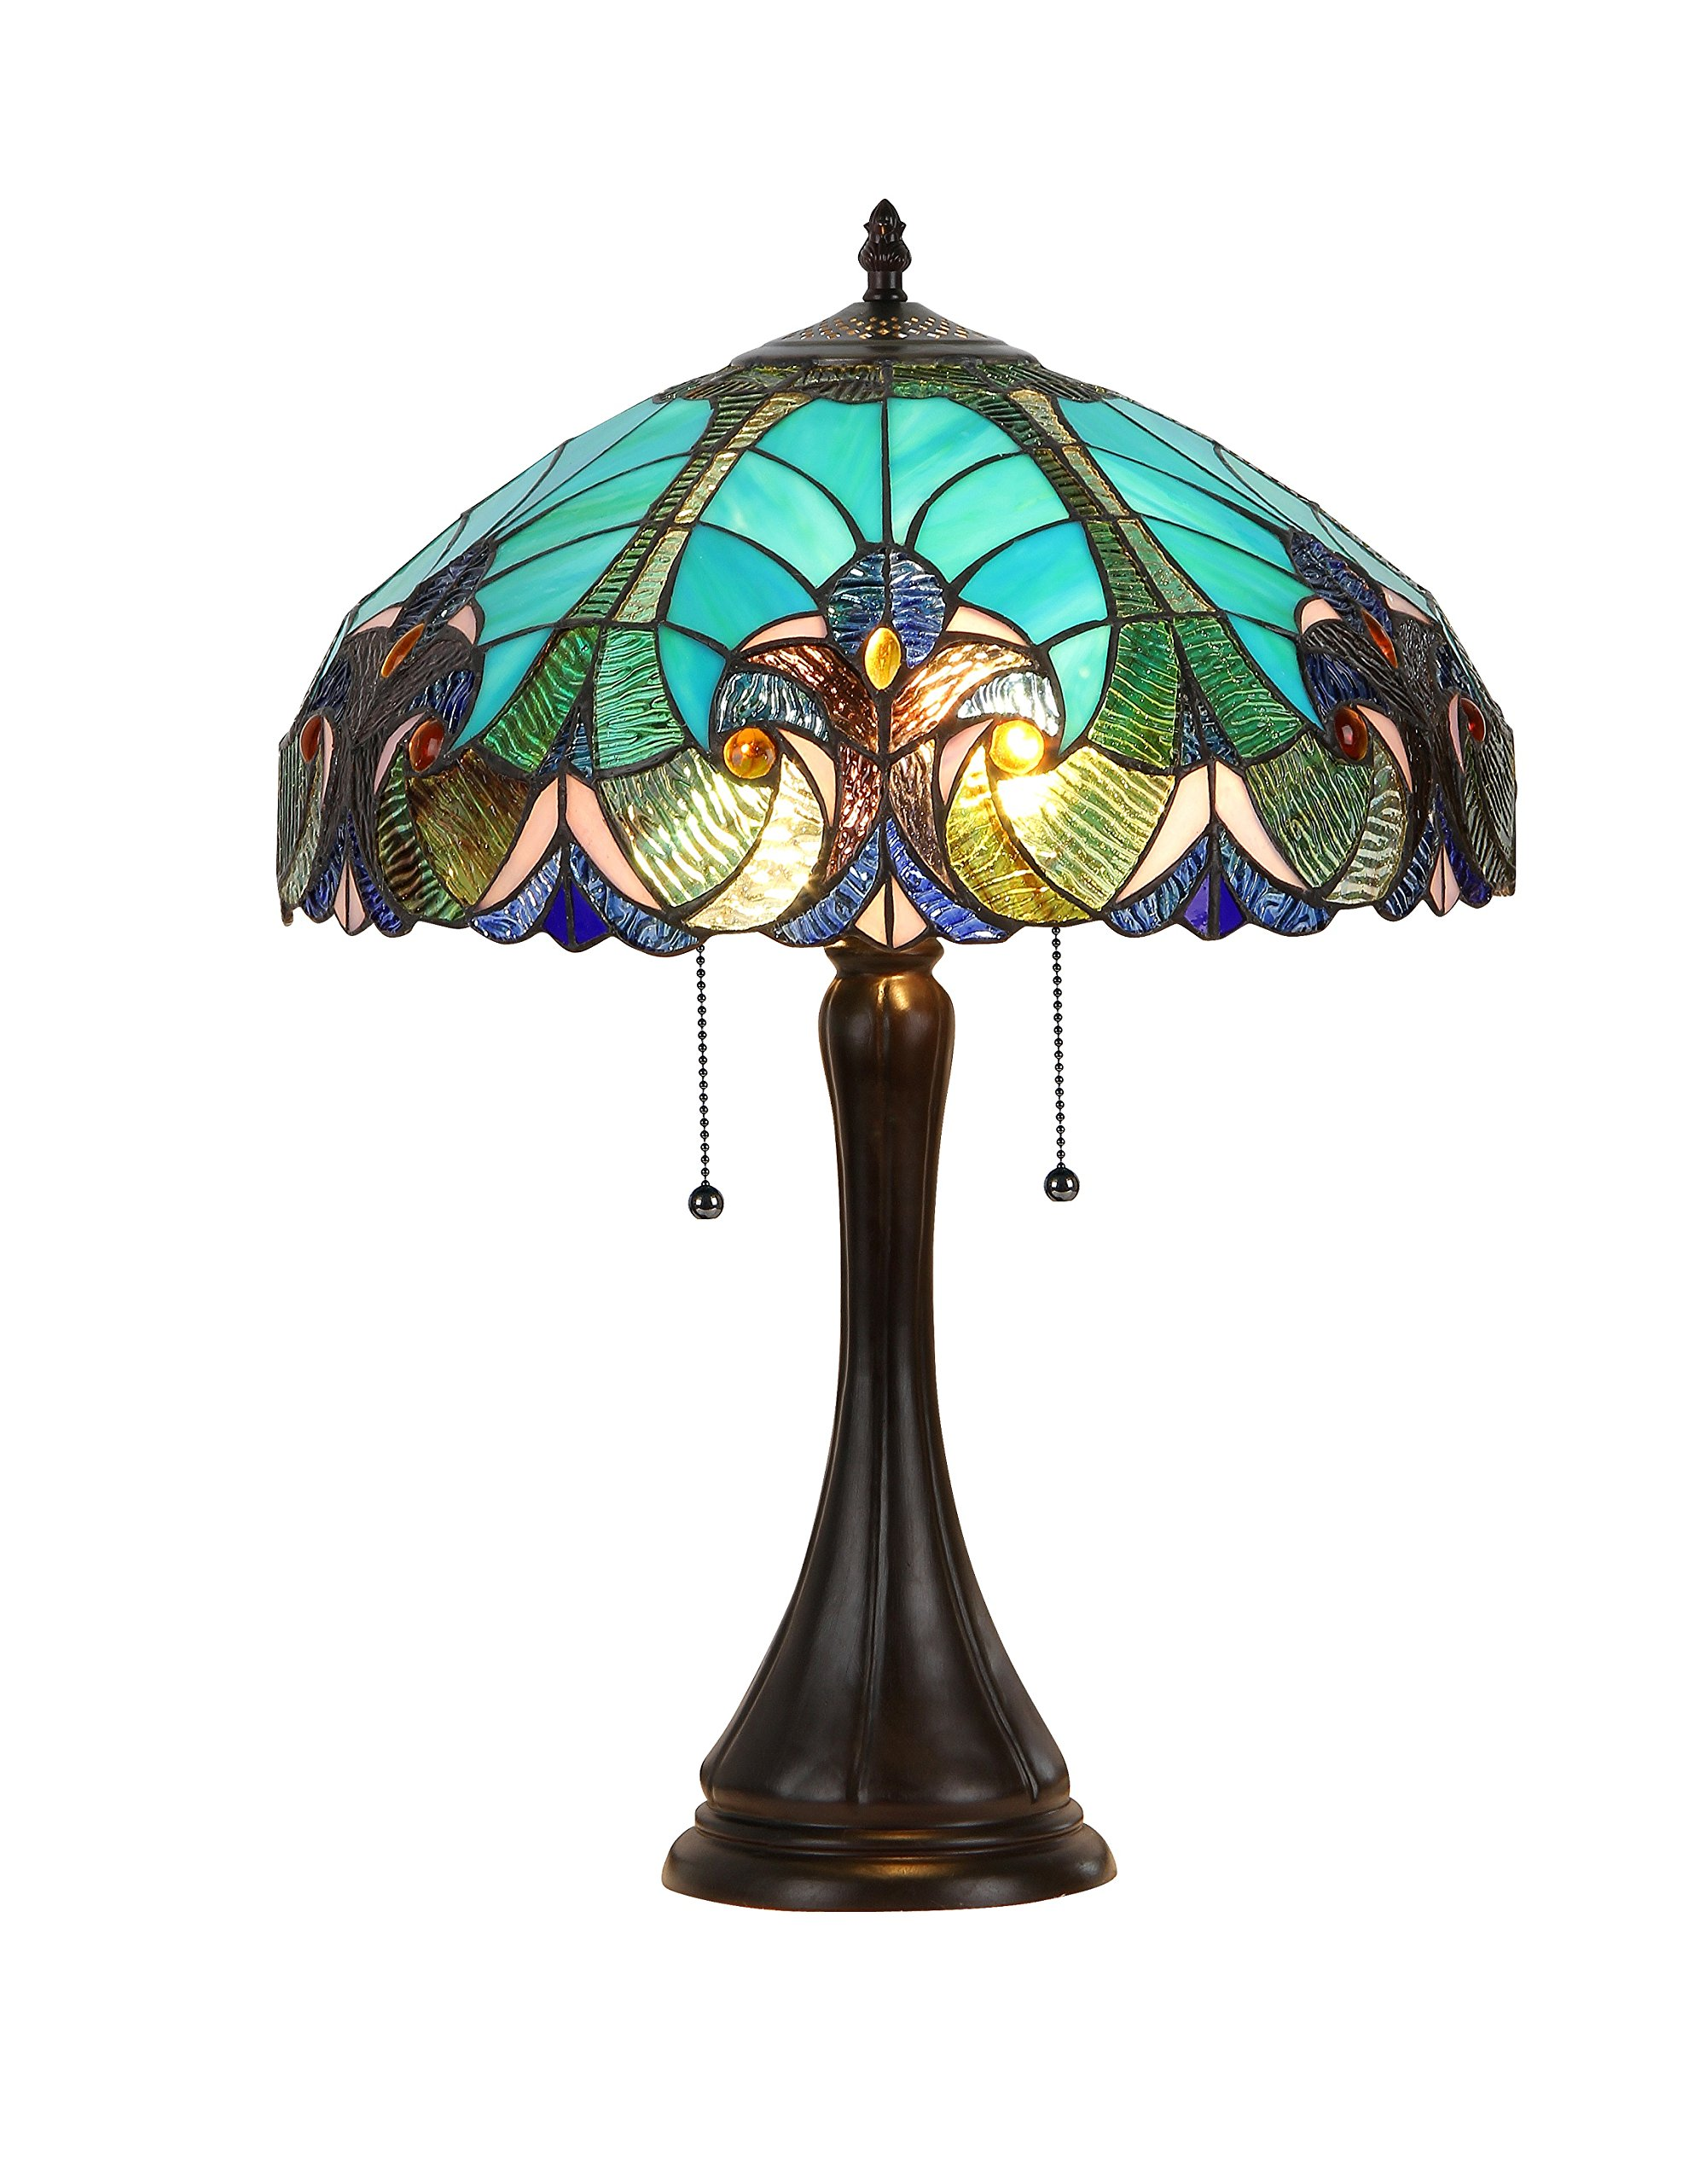 Chloe Lighting CH38780VG16-TL2 Tiffany-Style Victorian 2 Light Table Lamp 16-Inch Shade, Multi-Colored by Chloe Lighting